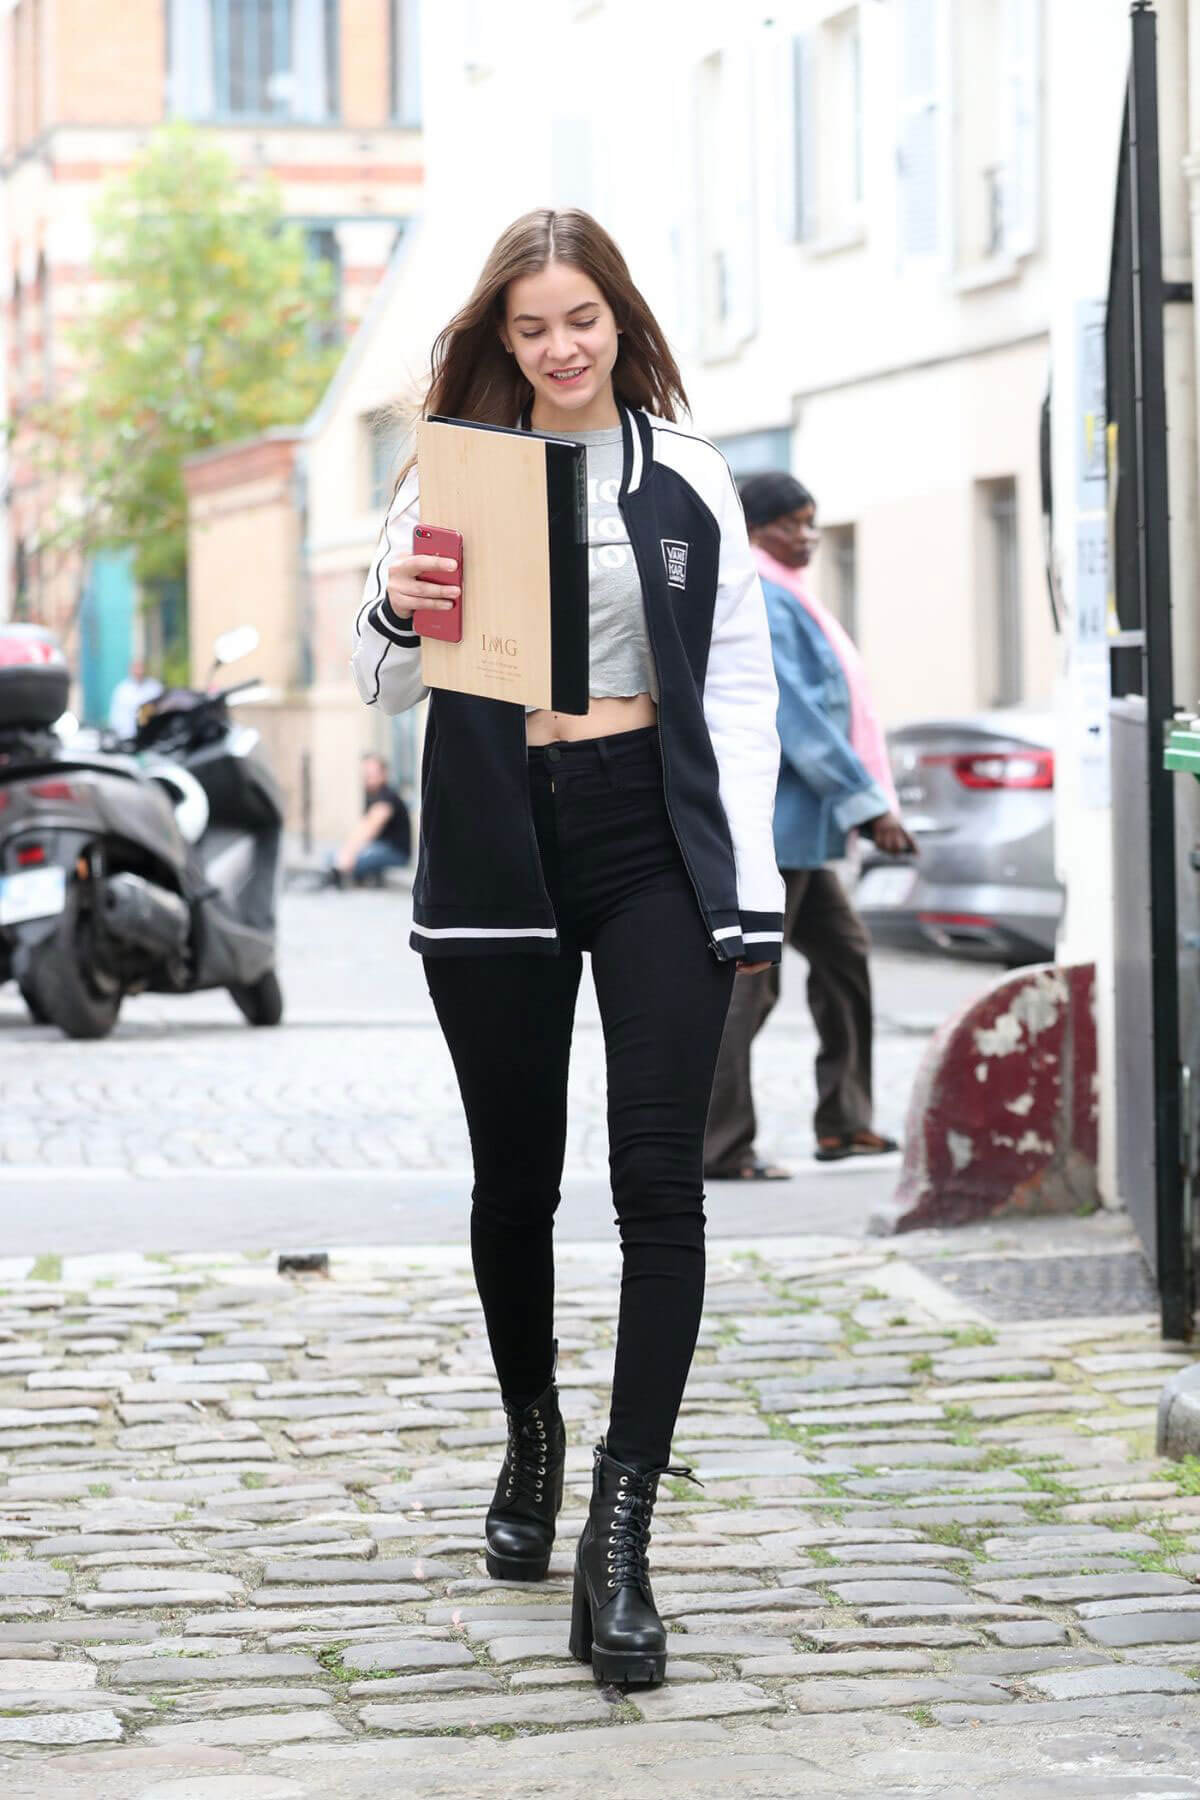 Barbara Palvin wears Jeans with Long Boots Stills Out and About in Paris